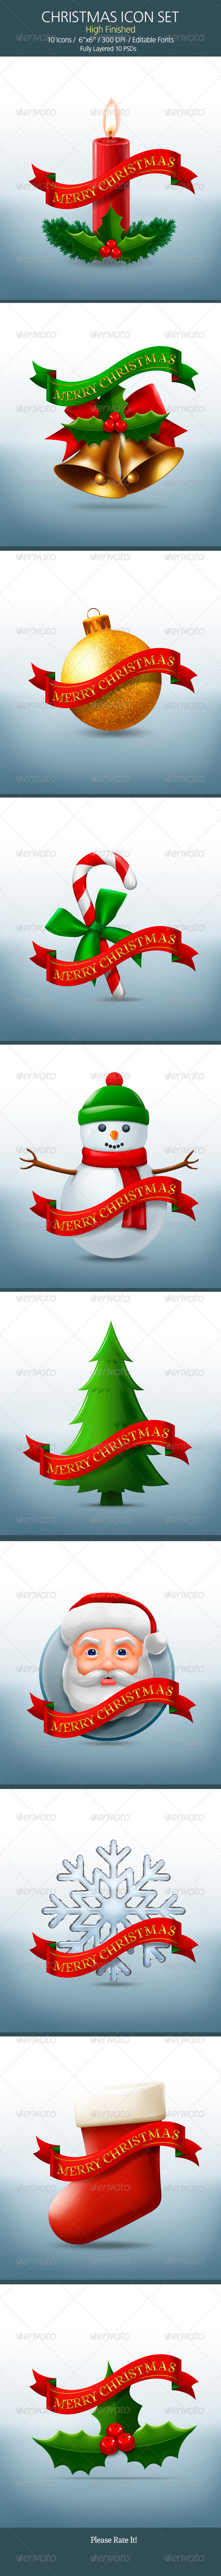 10 Christmas Icon Set - Seasonal Icons